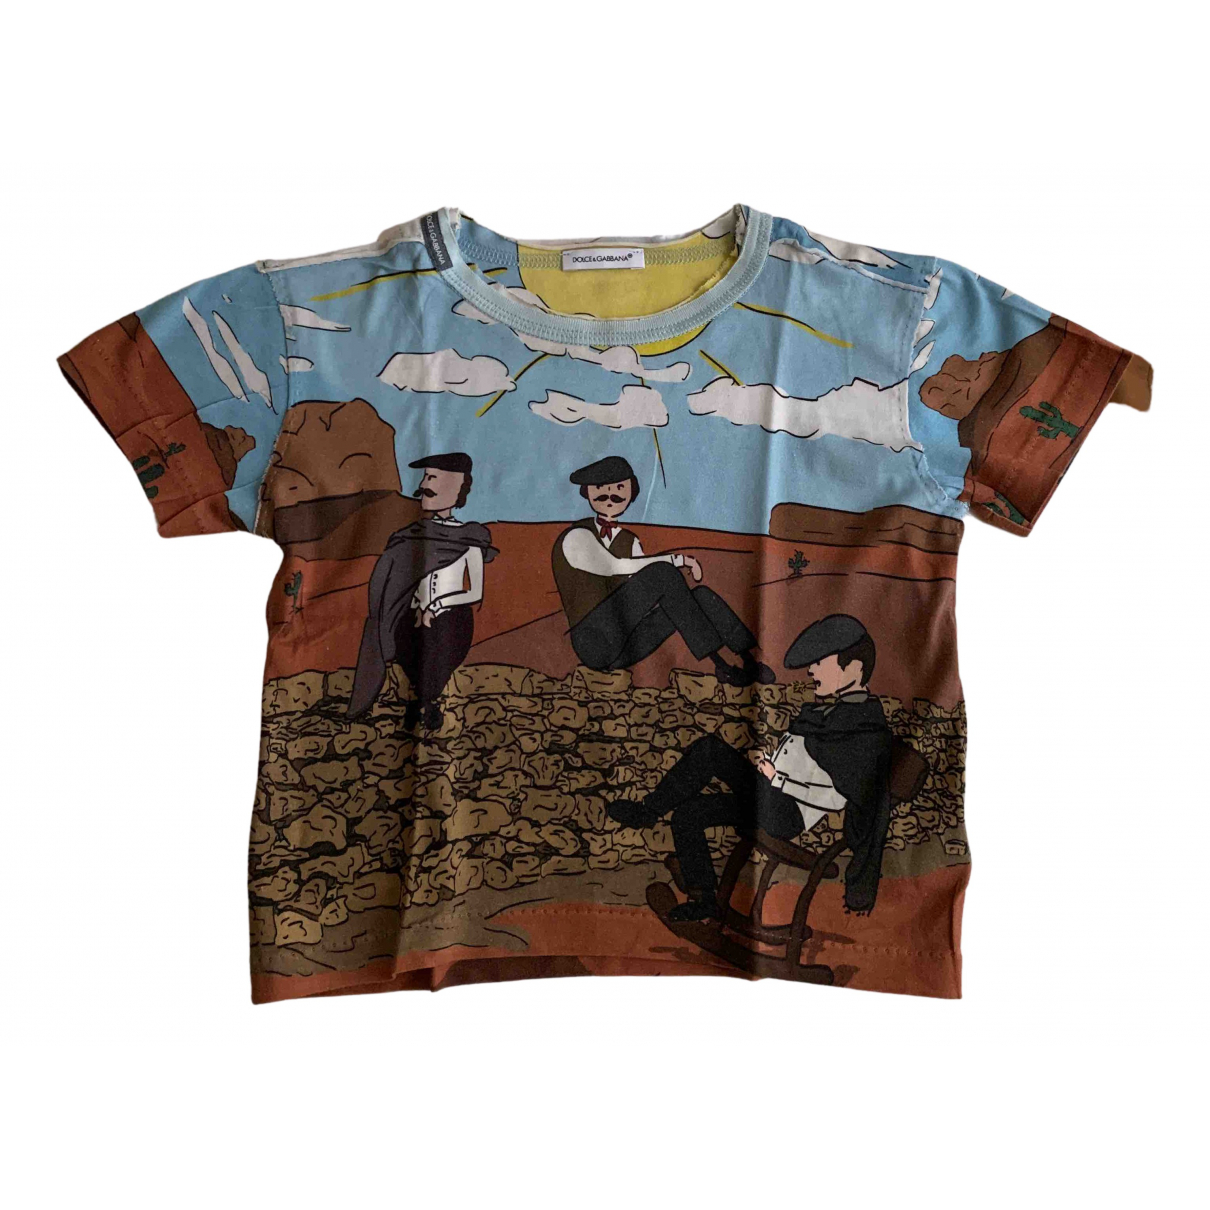 Dolce & Gabbana N Multicolour Cotton  top for Kids 2 years - up to 86cm FR